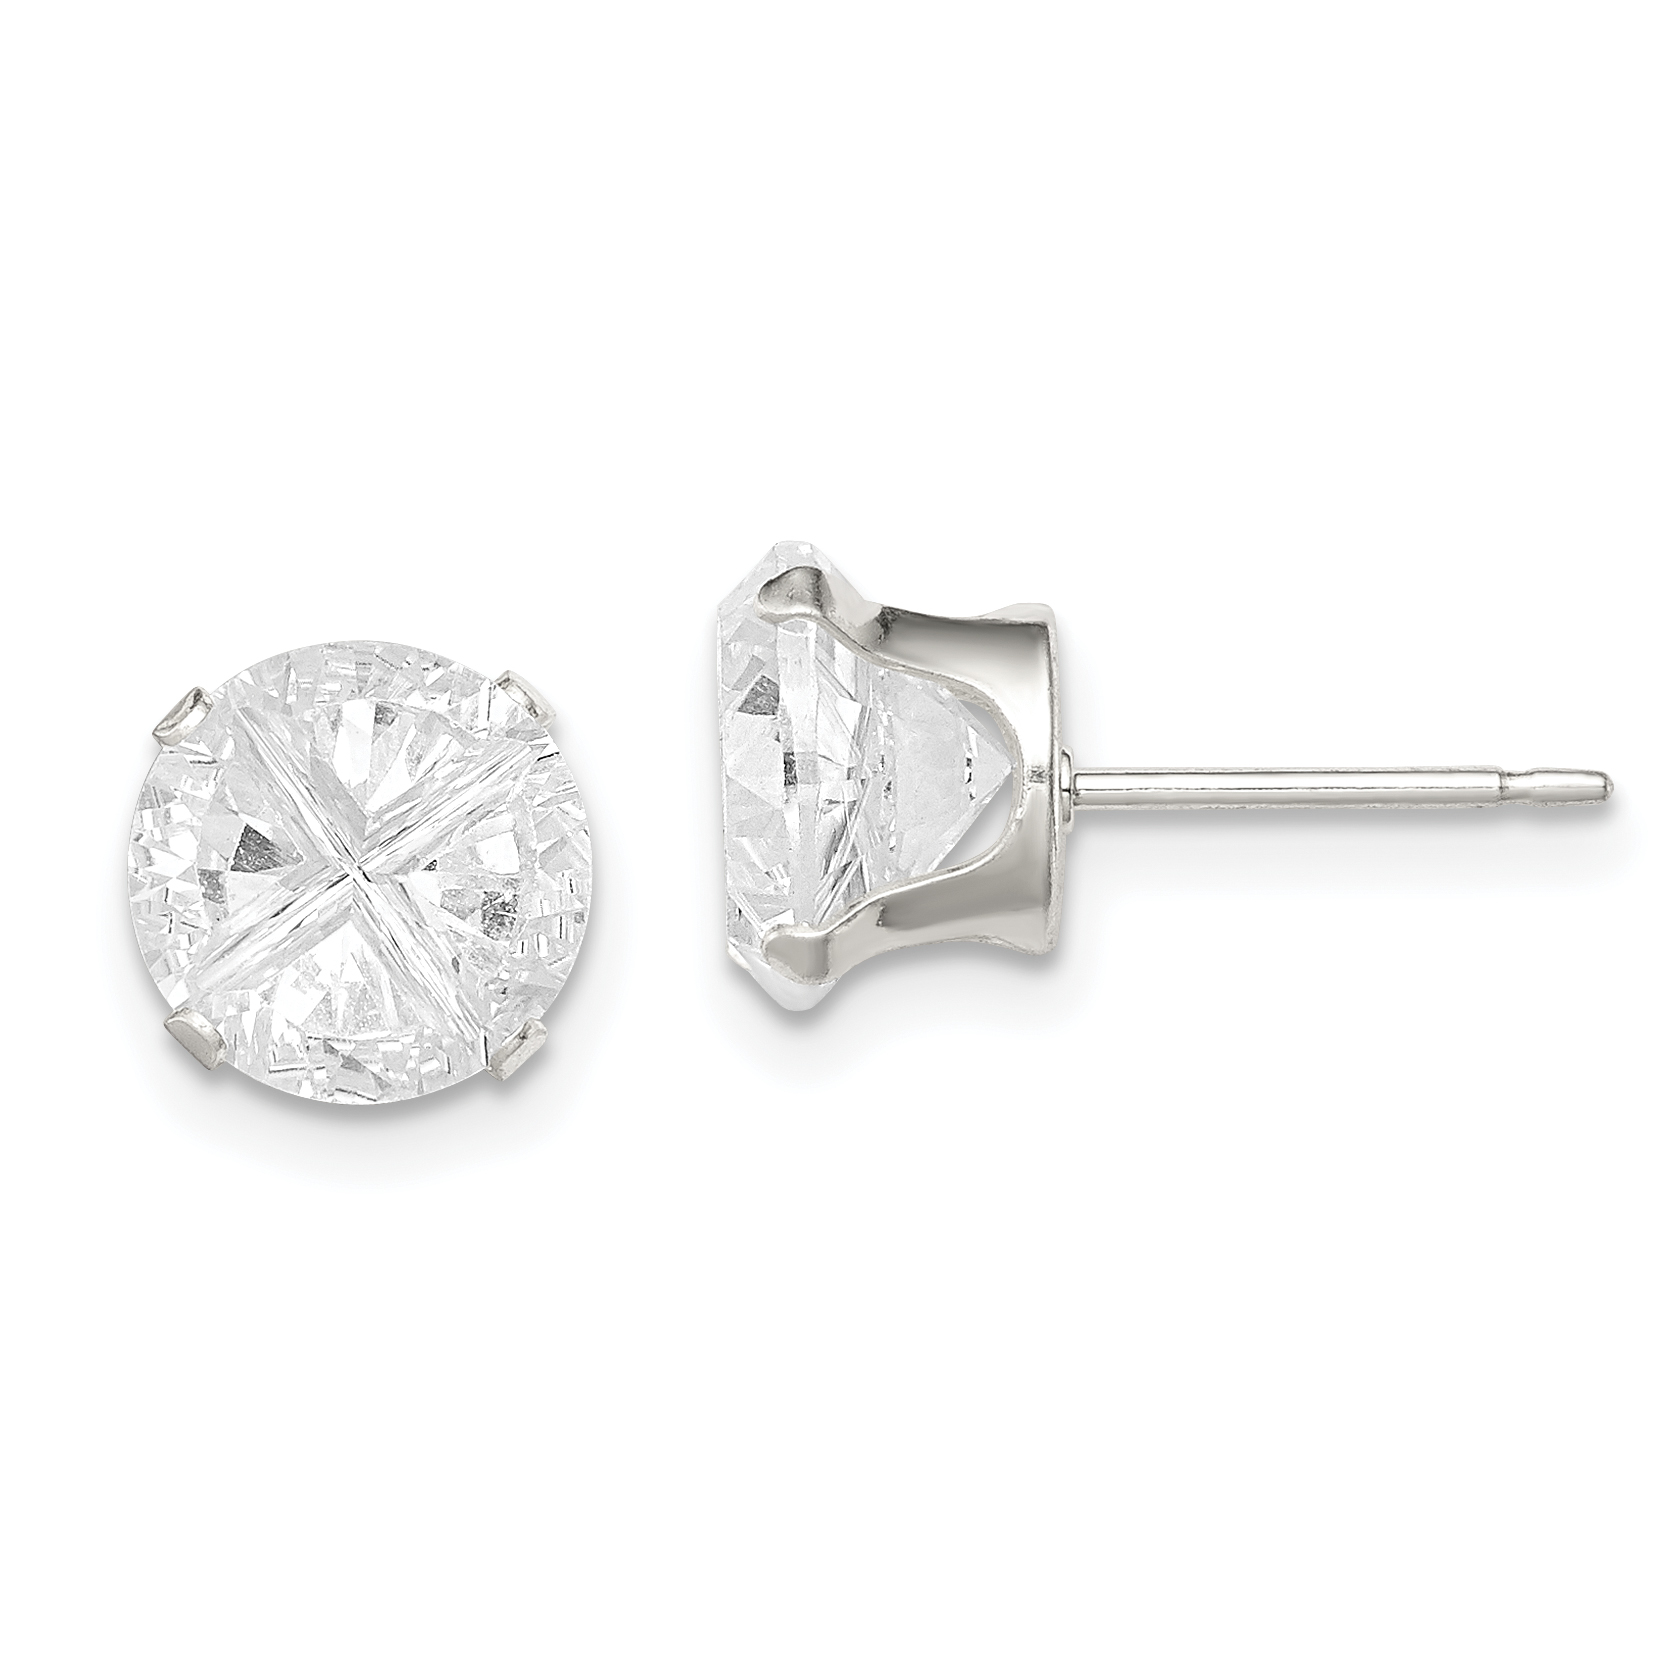 925 Sterling Silver 8mm Round Snap Set Cubic Zirconia Cz Stud Earrings Square Fine Jewelry Gifts For Women For Her - image 3 de 3